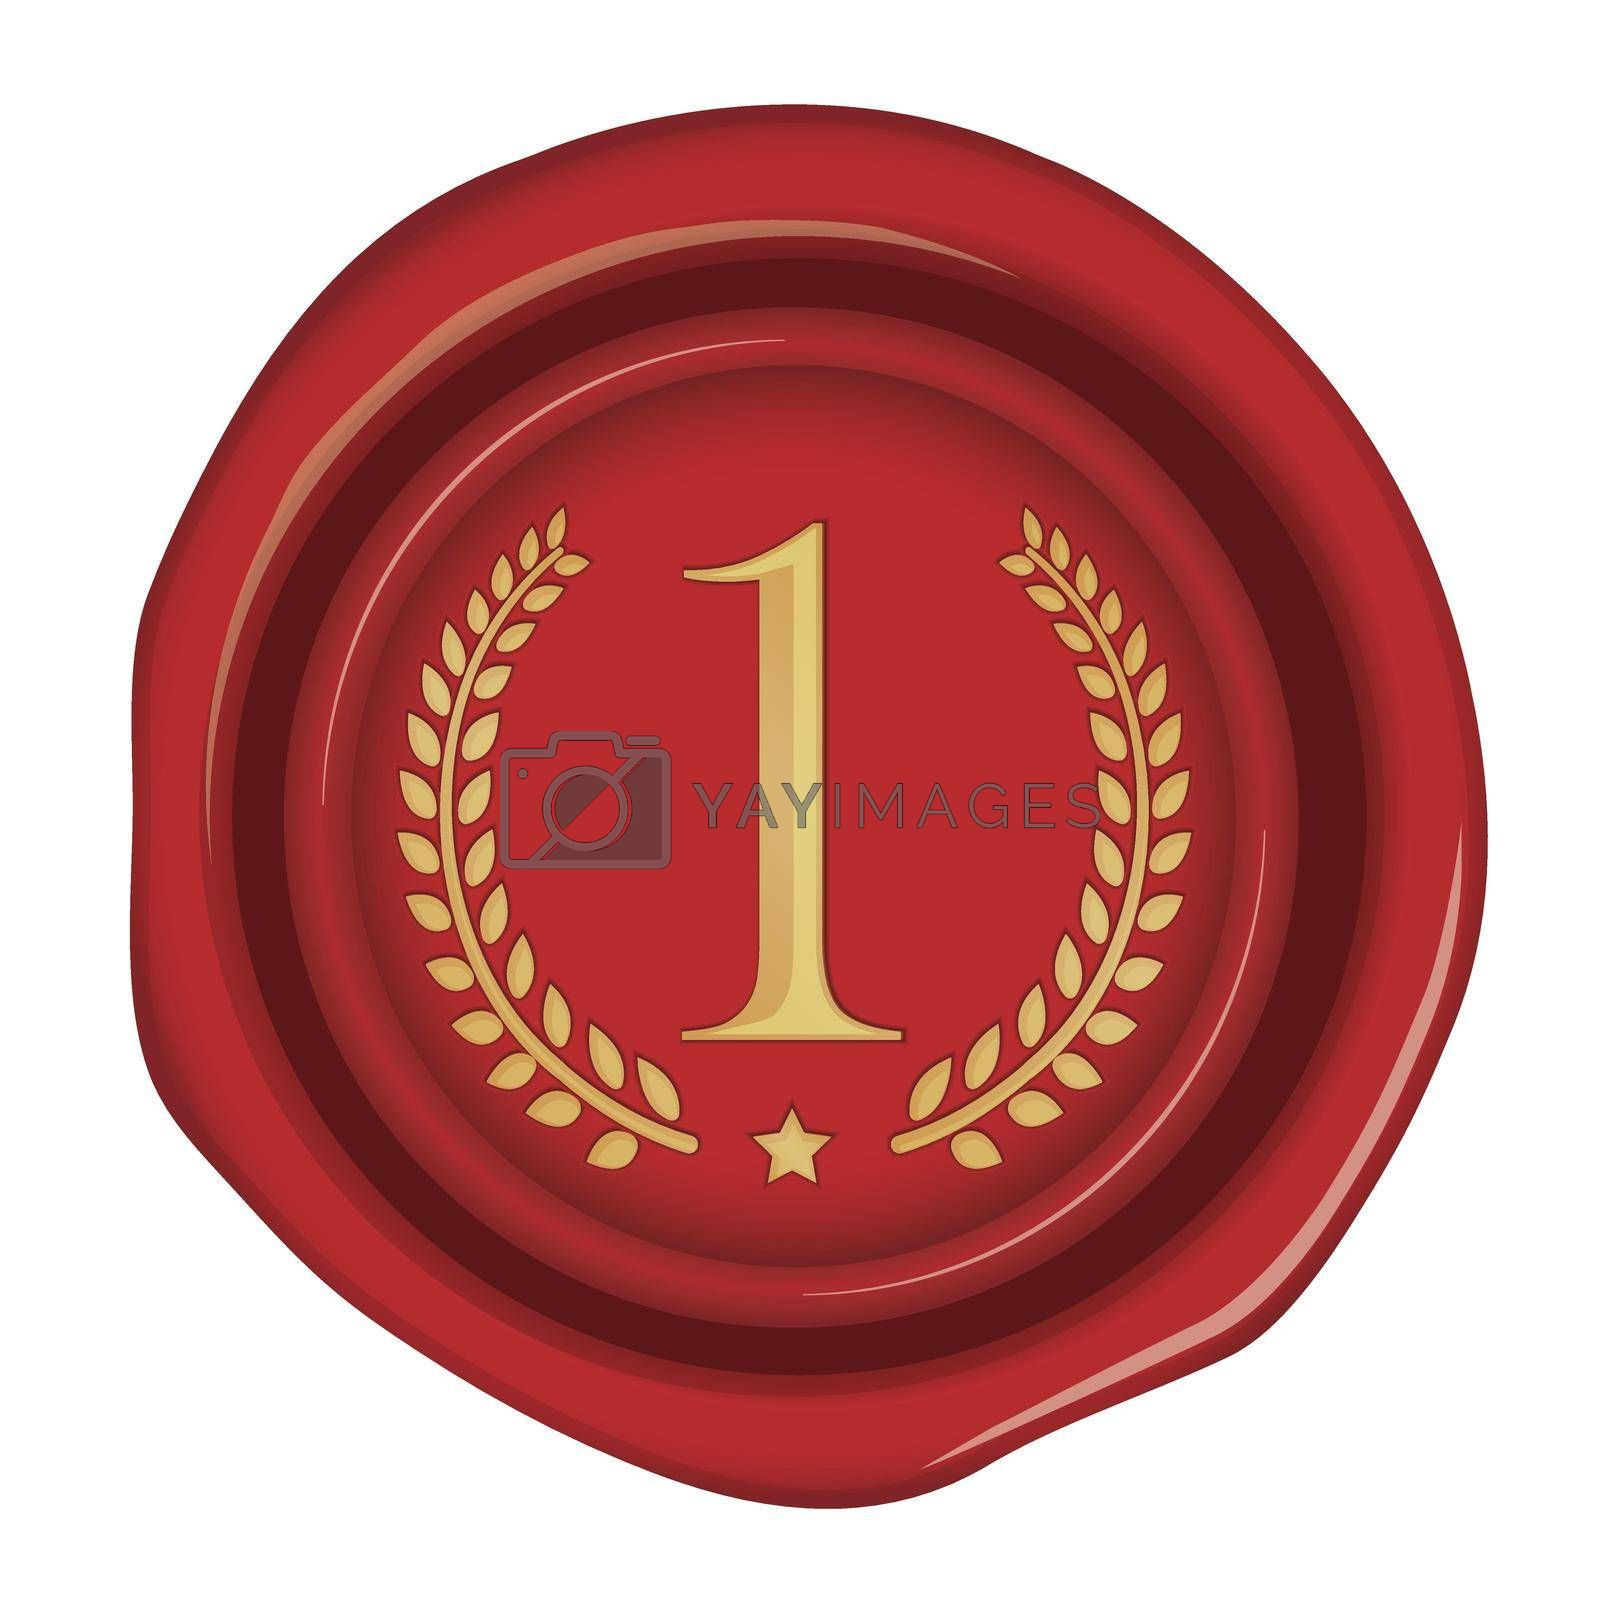 Sealing wax illustration / number, ranking (1st place/gold)